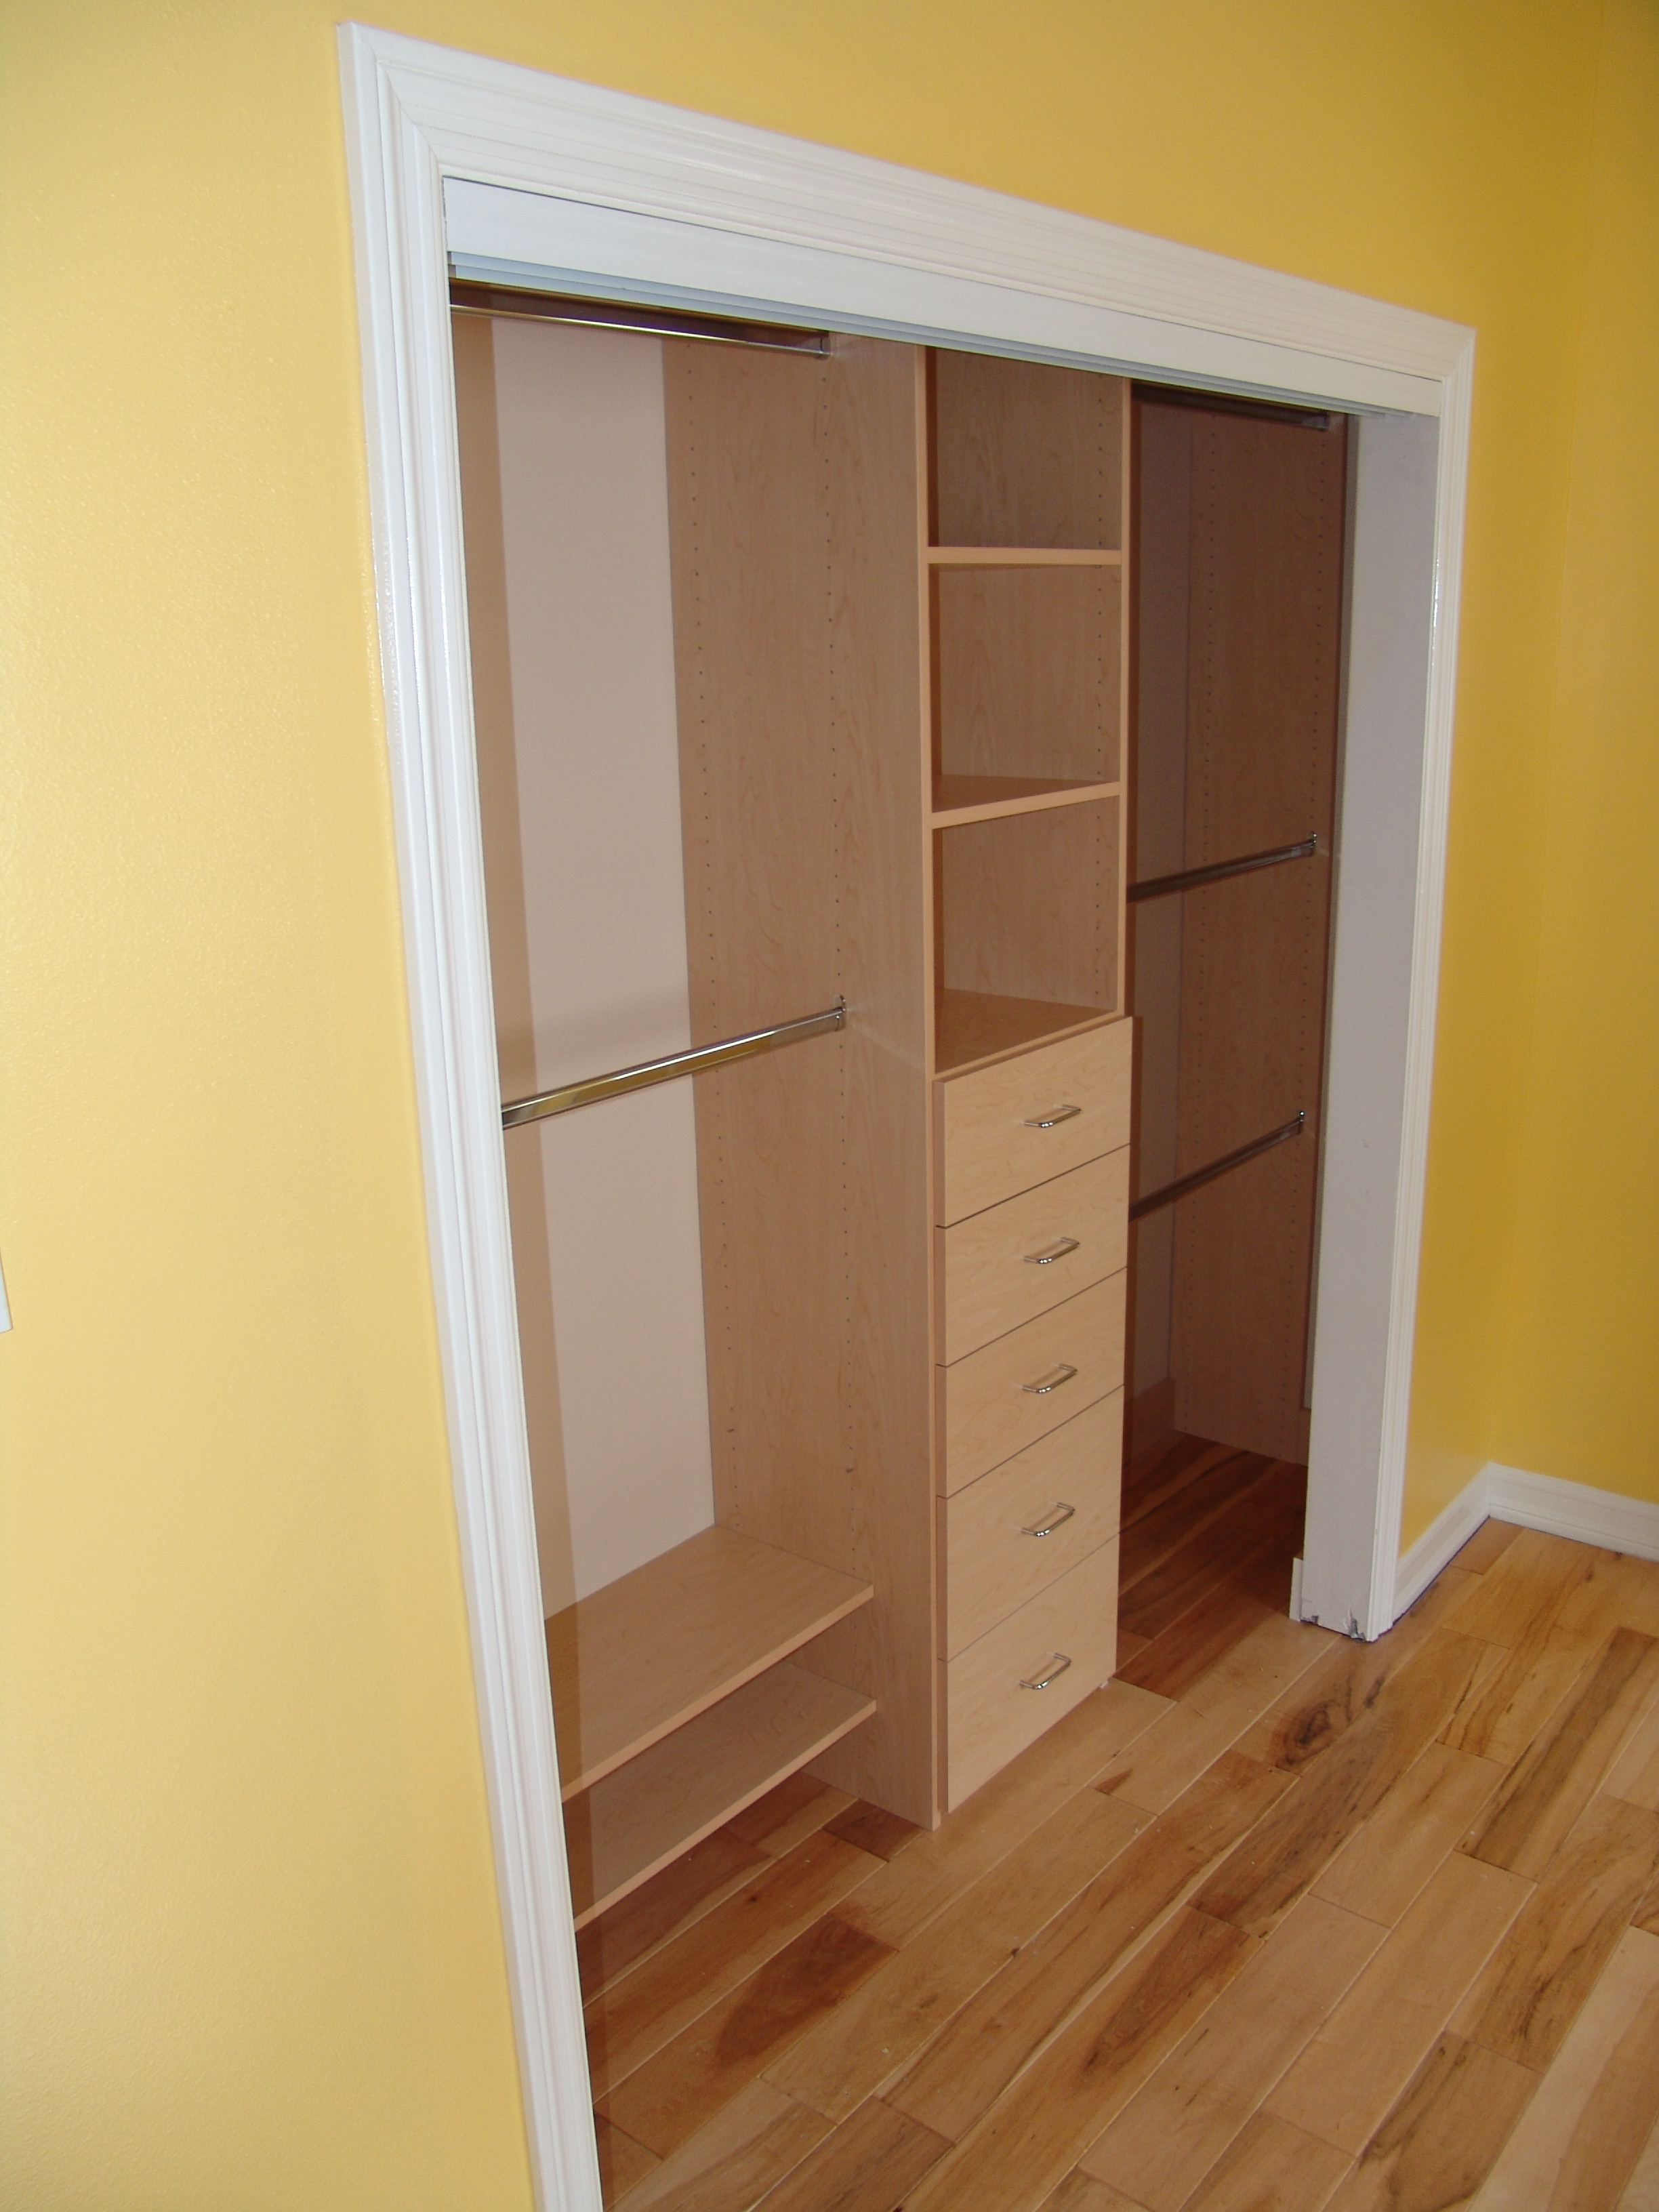 tx designs closet ideas unit in dr walk top rustic on bering houston closets gatr california